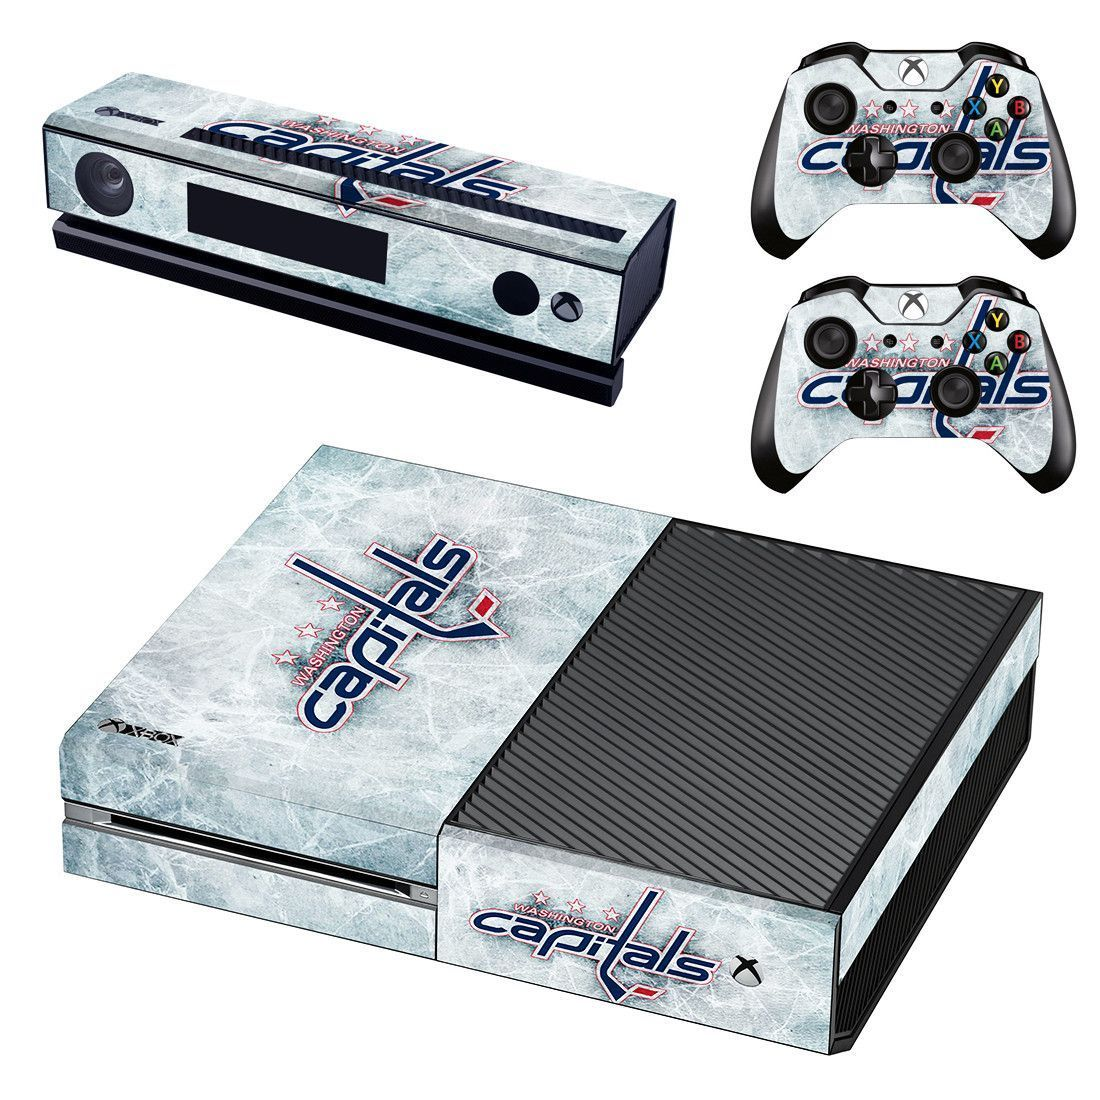 Washington Capitals Xbox One Skin Decal For Console And 2 Controllers Hockeynhlteamsdecals Xbox One Skin Xbox One Xbox One Console